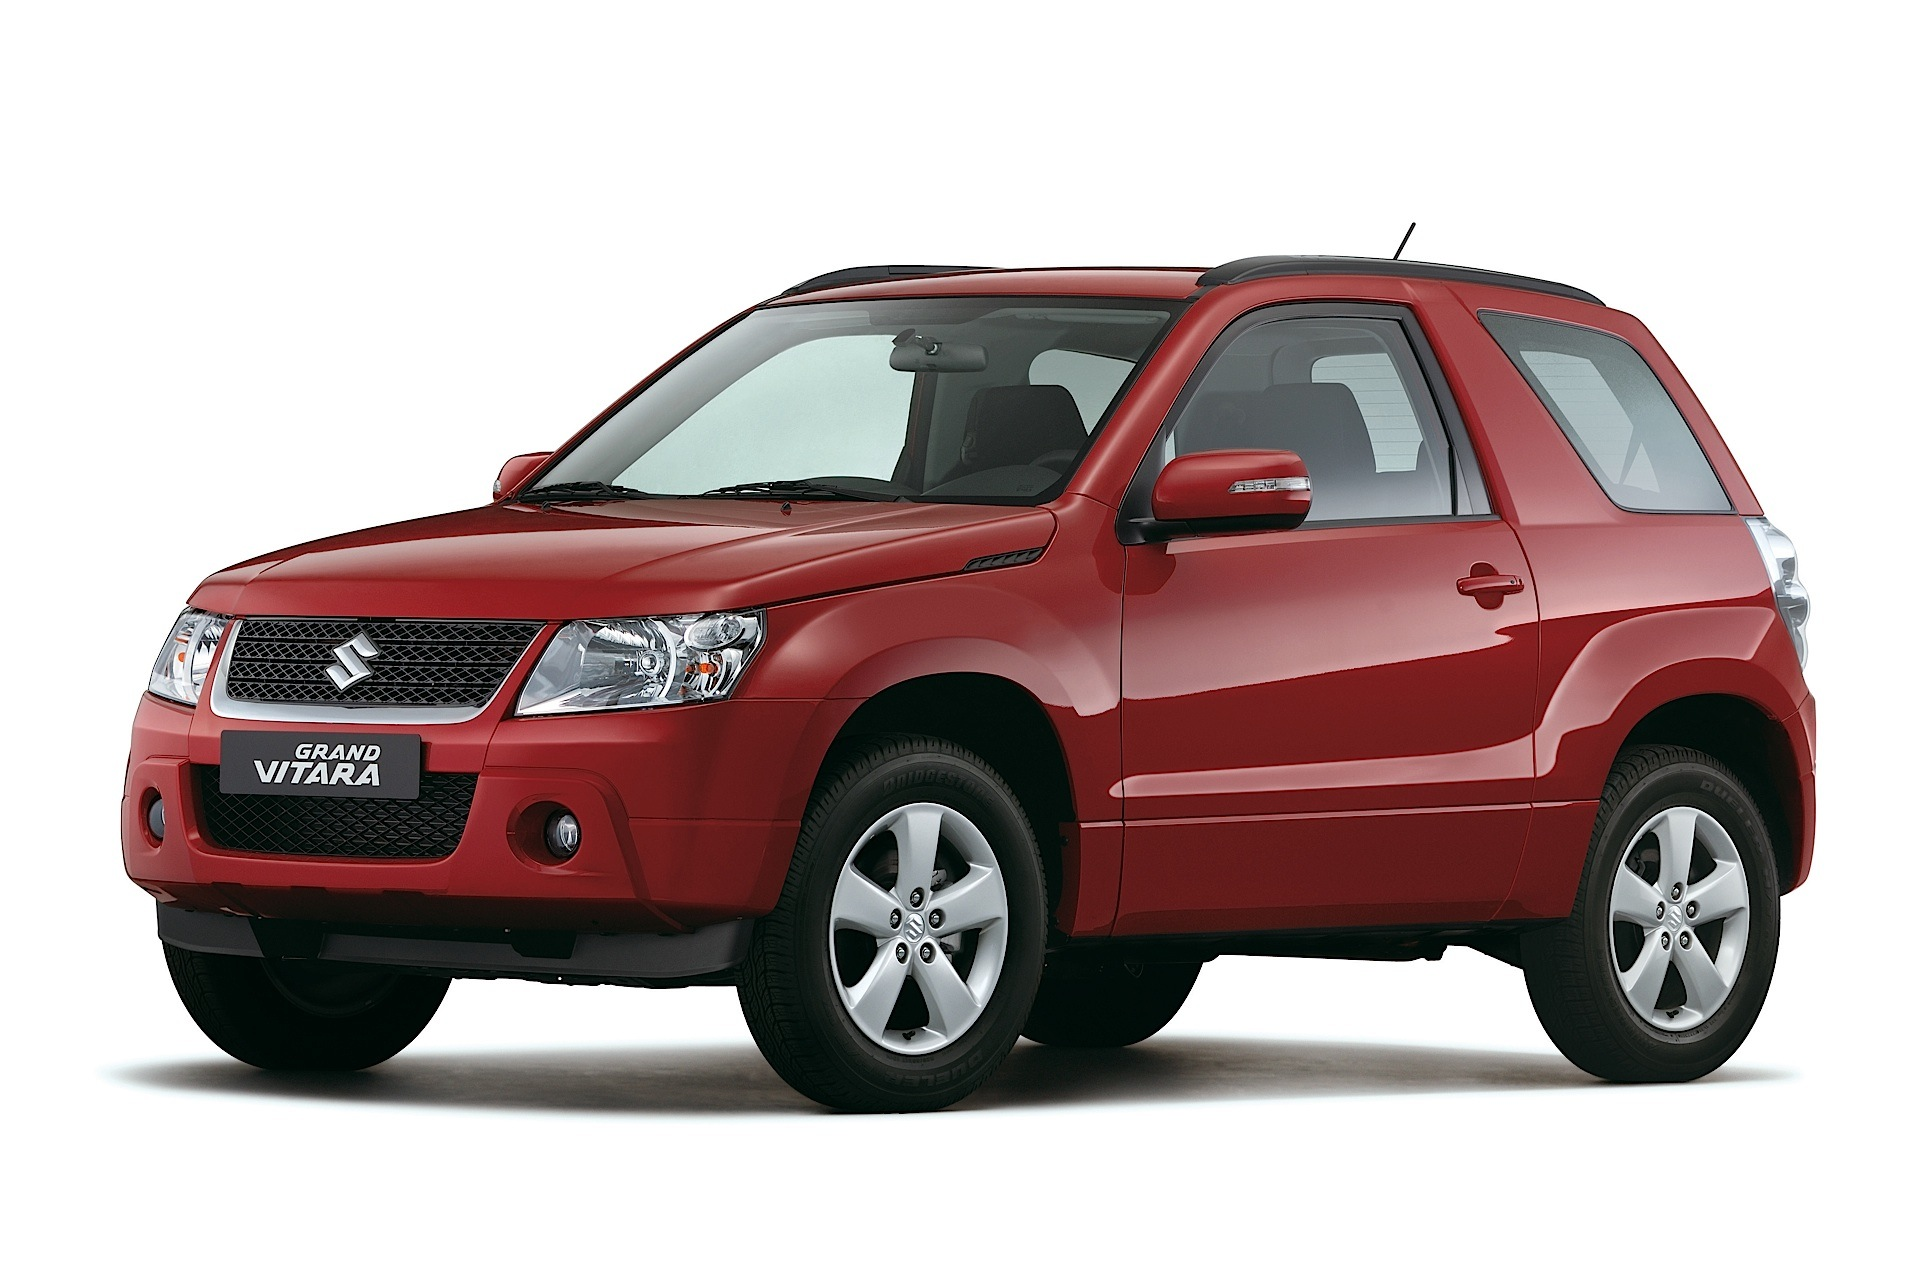 suzuki grand vitara 3 doors specs photos 2008 2009. Black Bedroom Furniture Sets. Home Design Ideas